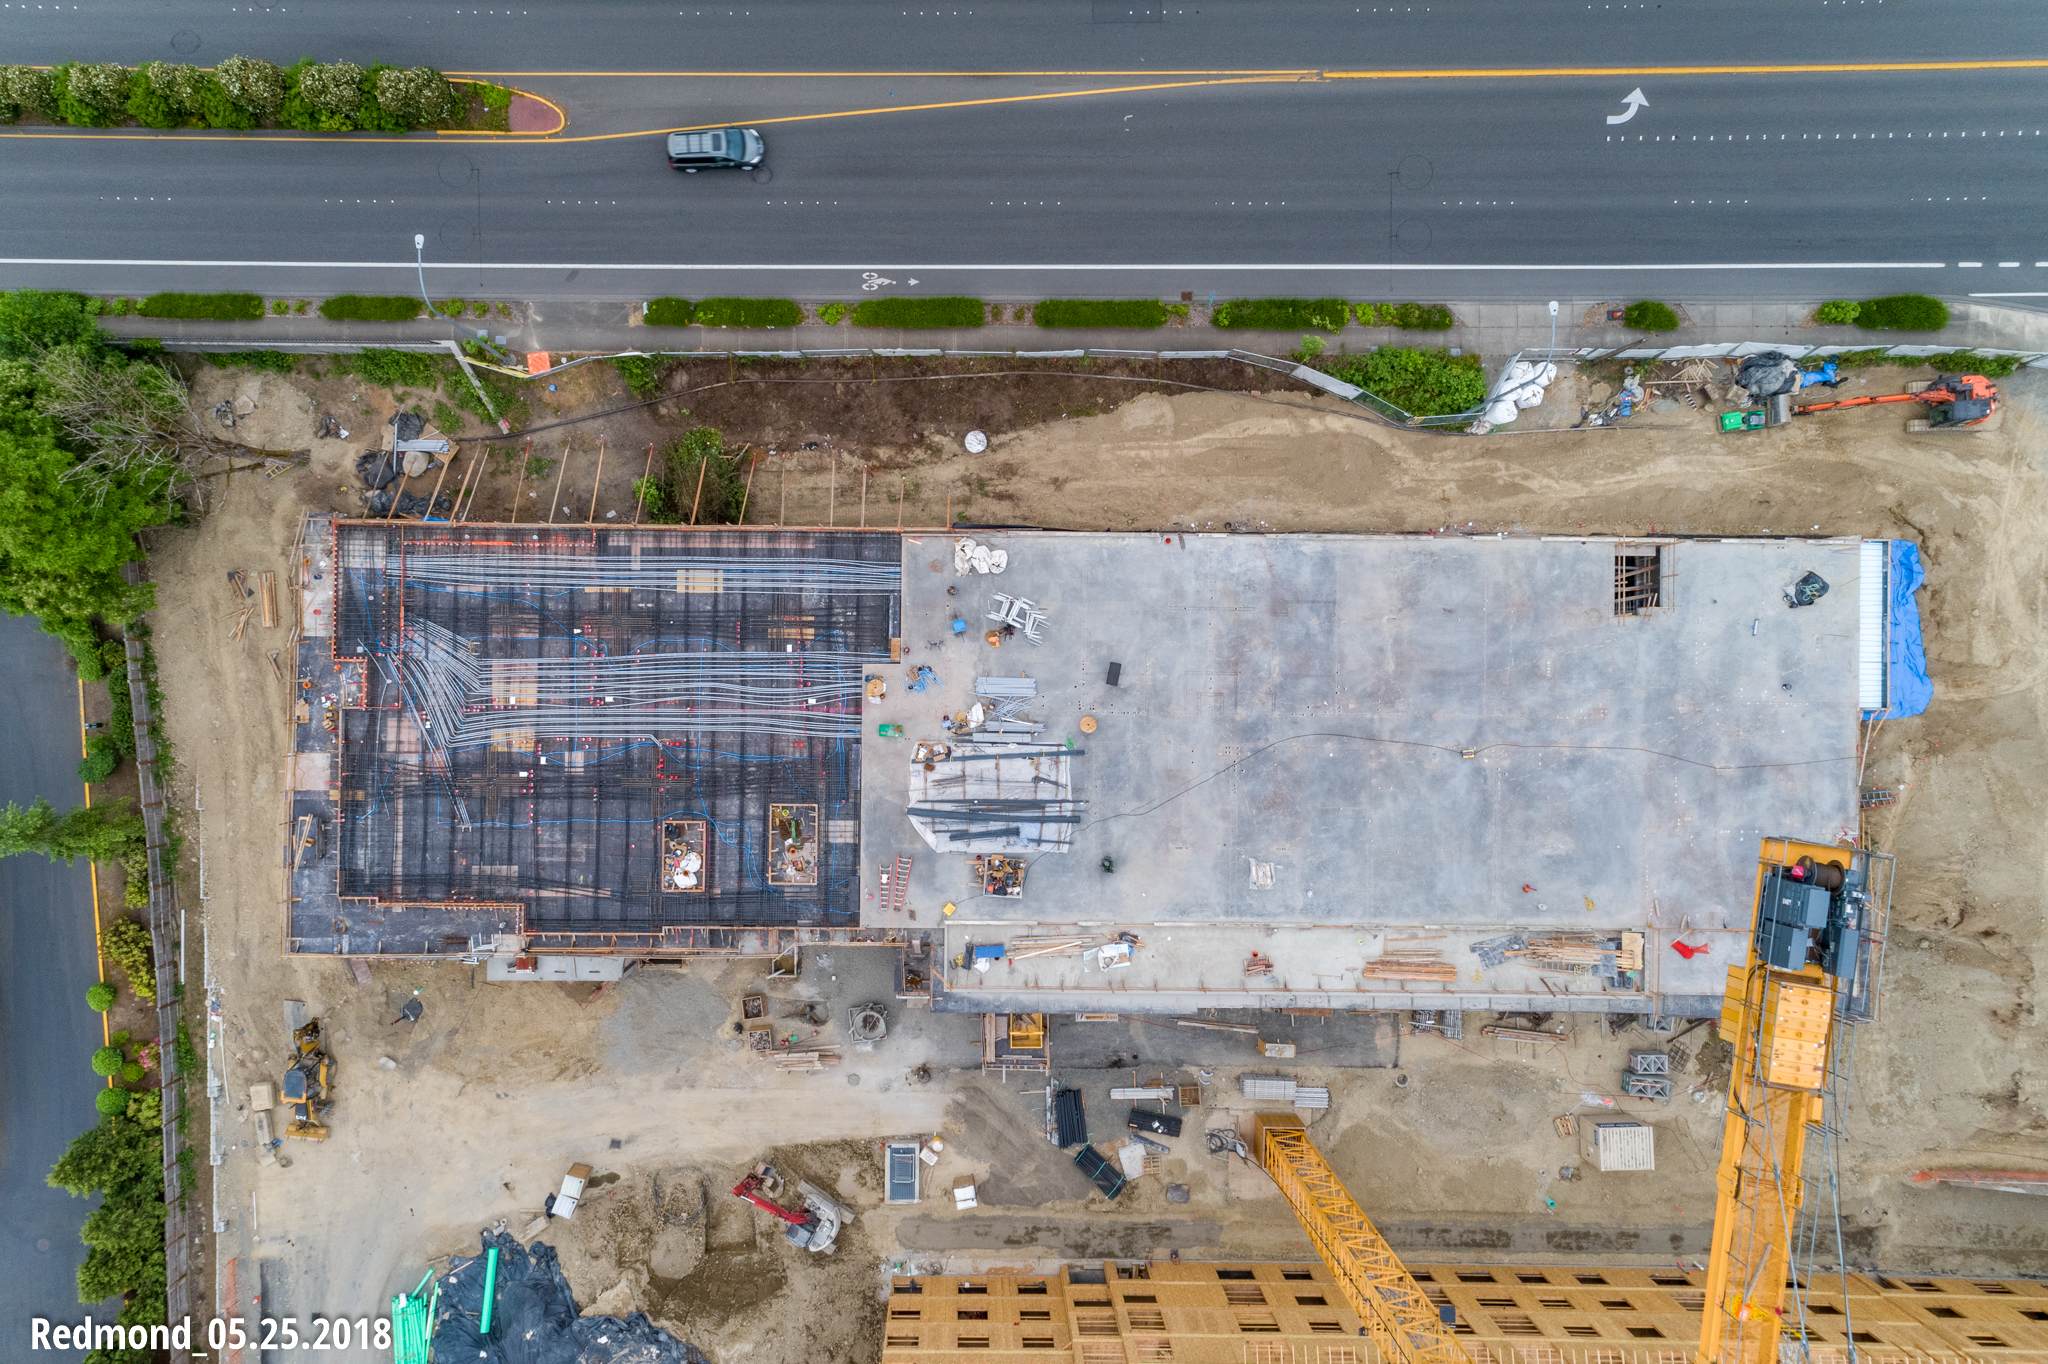 Kyle Ventle_NorthWest Drone Works_ Redmond Construction Aerial Photography-9.jpg